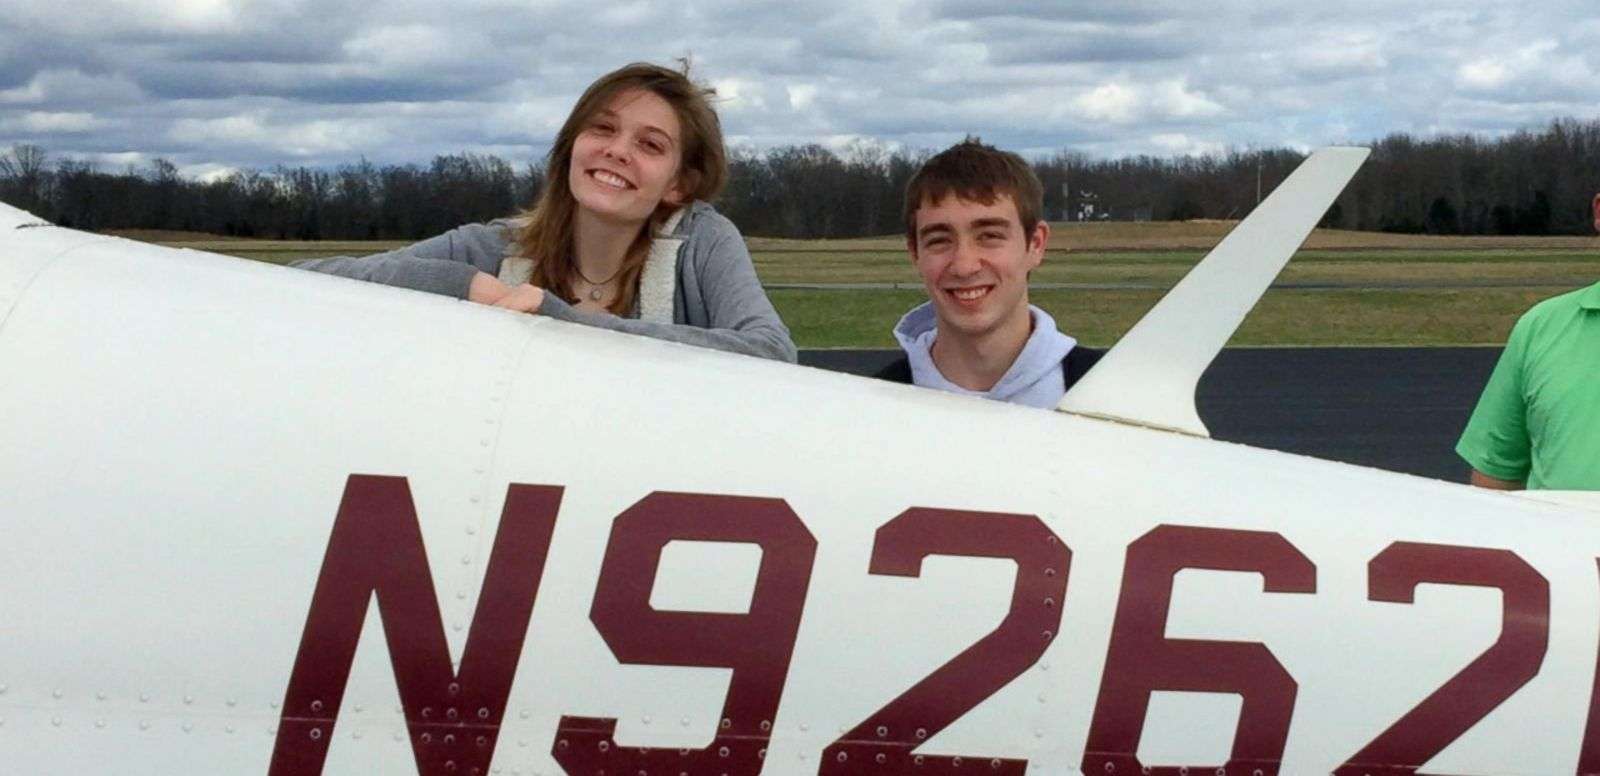 VIDEO: Teen Pilot, Girlfriend Survive Emergency Landing on Golf Course